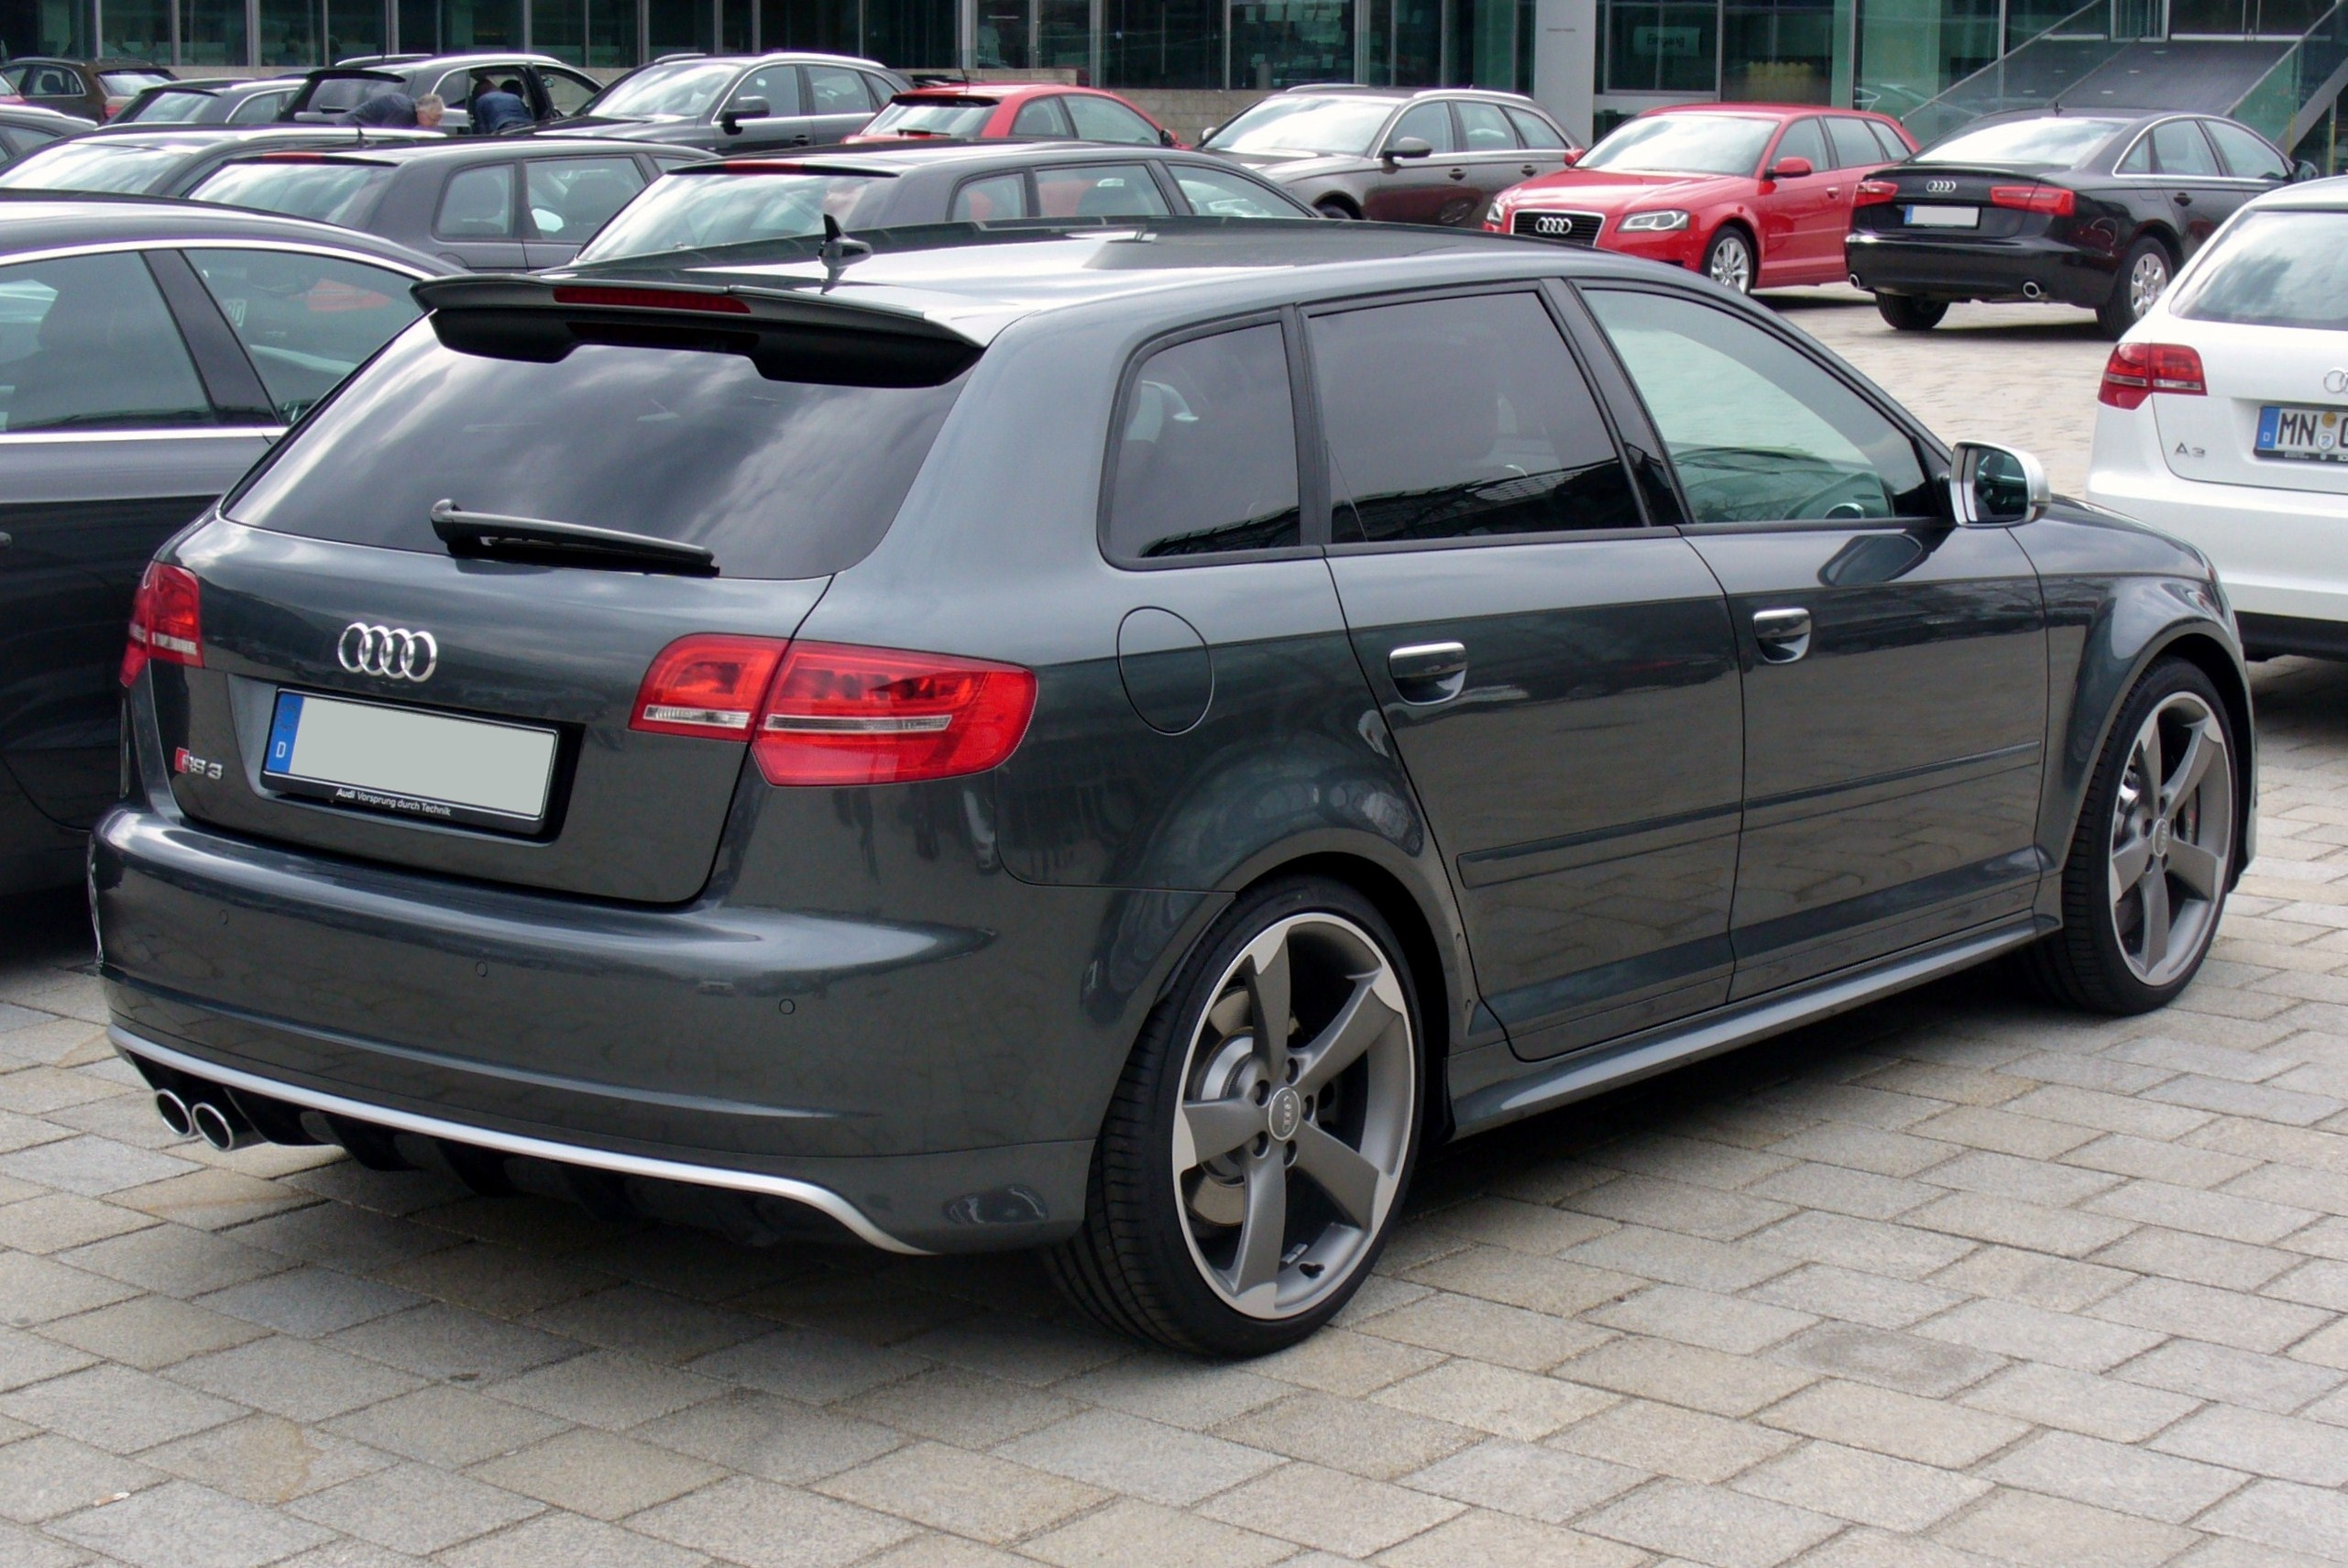 datei audi rs3 sportback daytonagrau heck jpg wikipedia. Black Bedroom Furniture Sets. Home Design Ideas